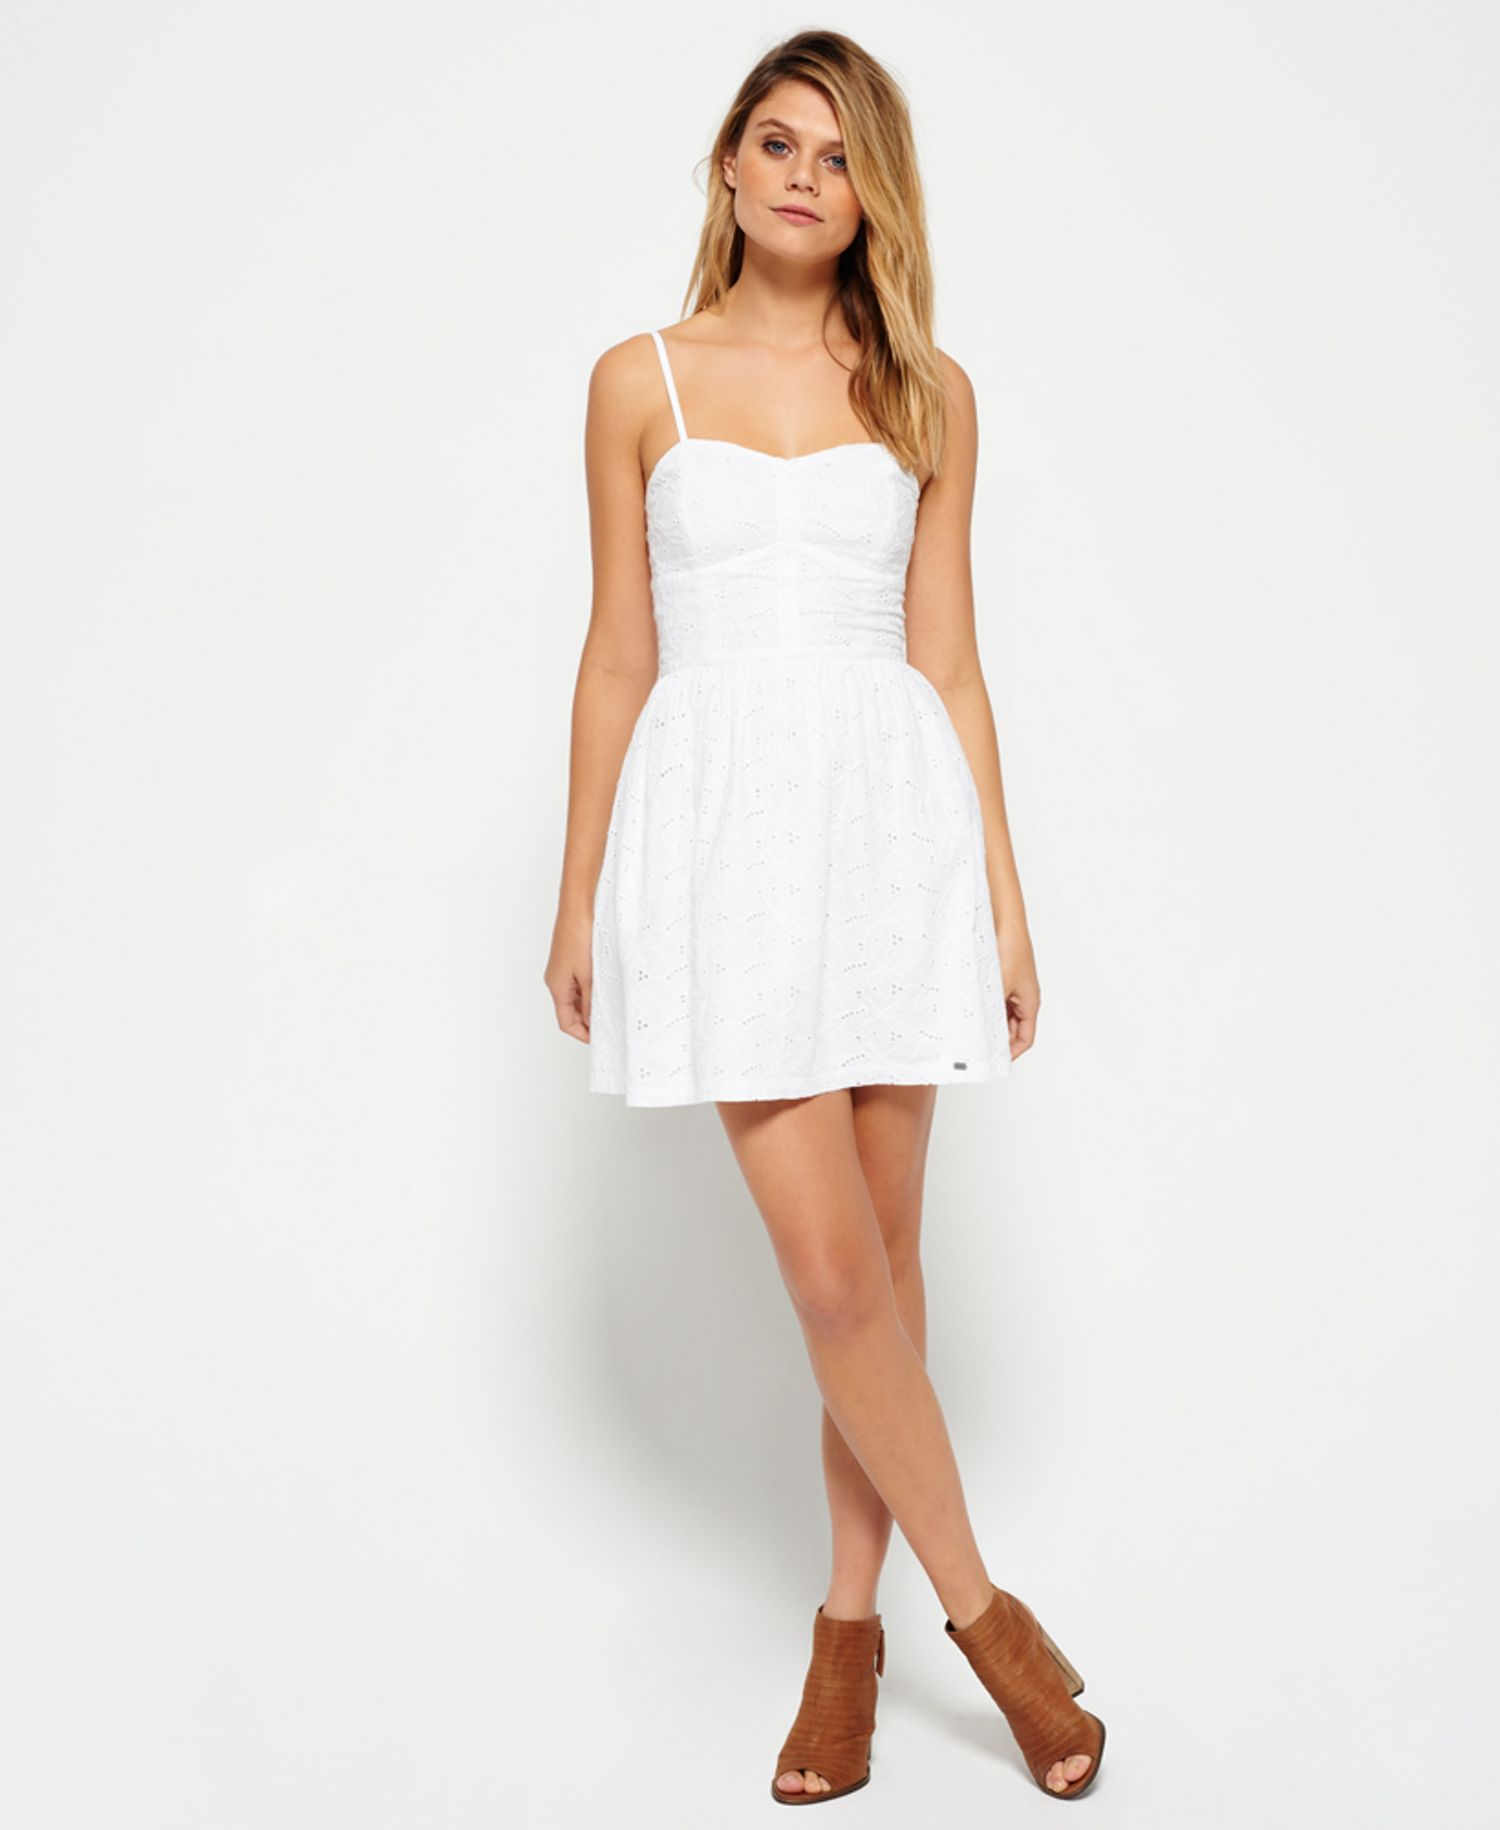 SUPERDRY WHITE DRESS